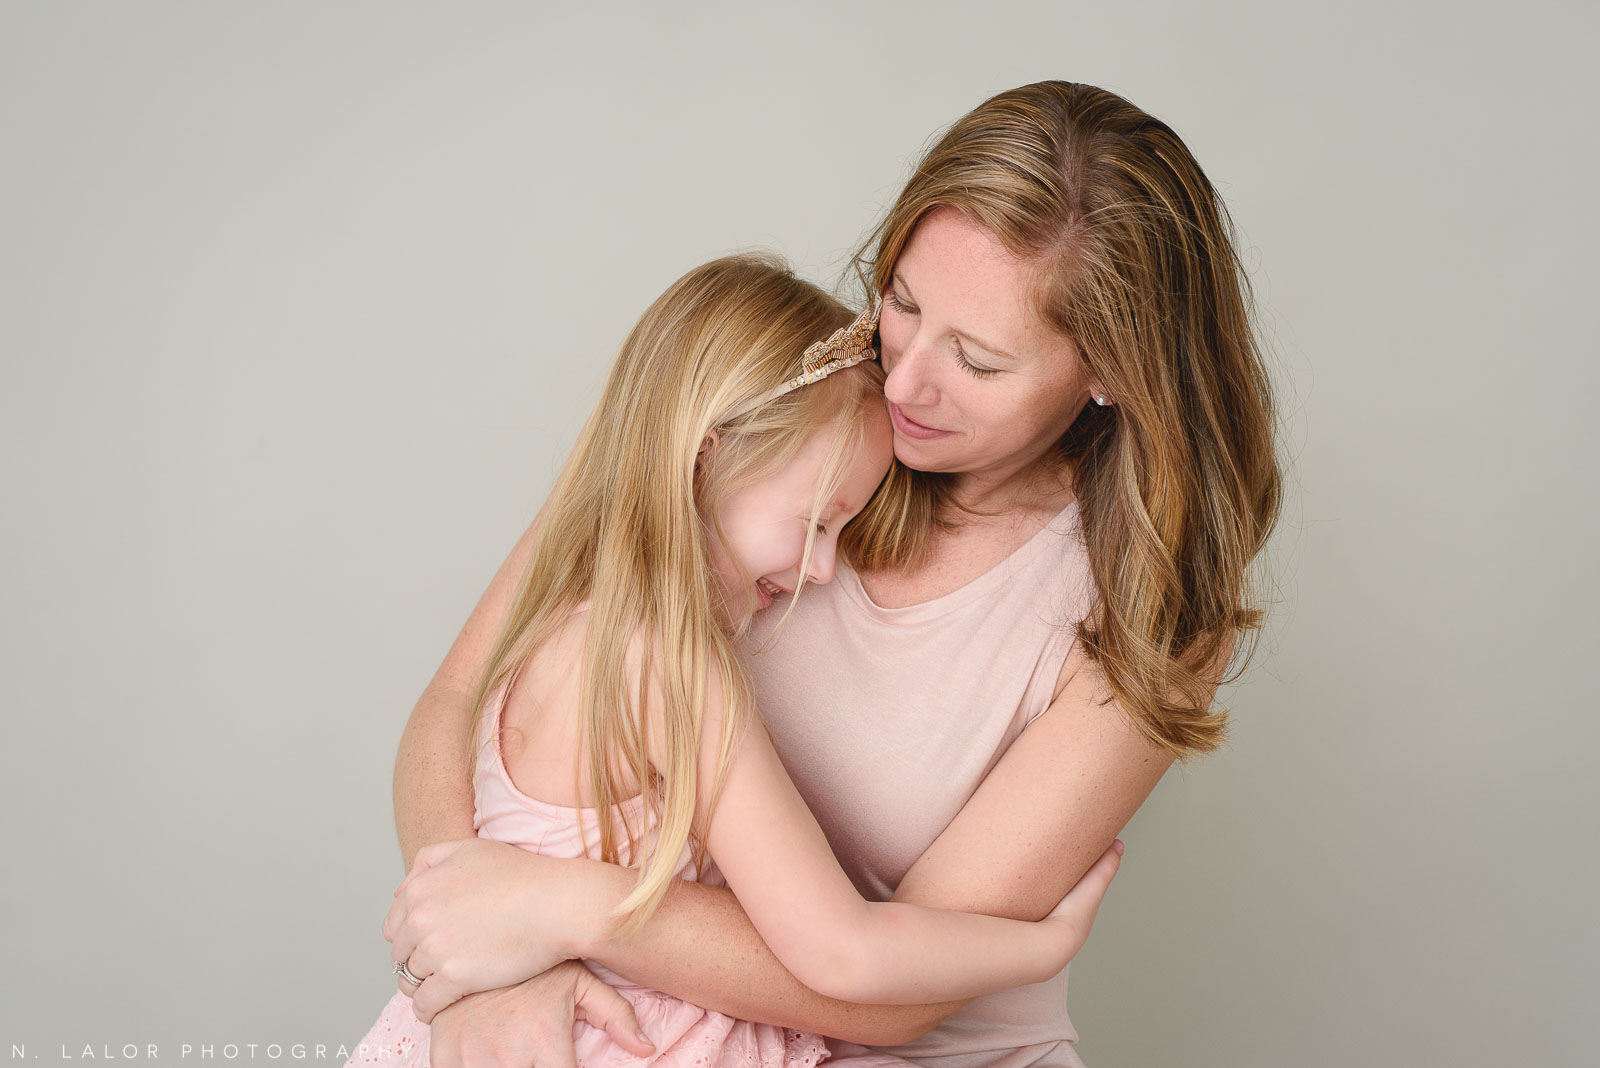 Mom and daughter. Family photo session with N. Lalor Photography. Greenwich, Connecticut studio photographer.